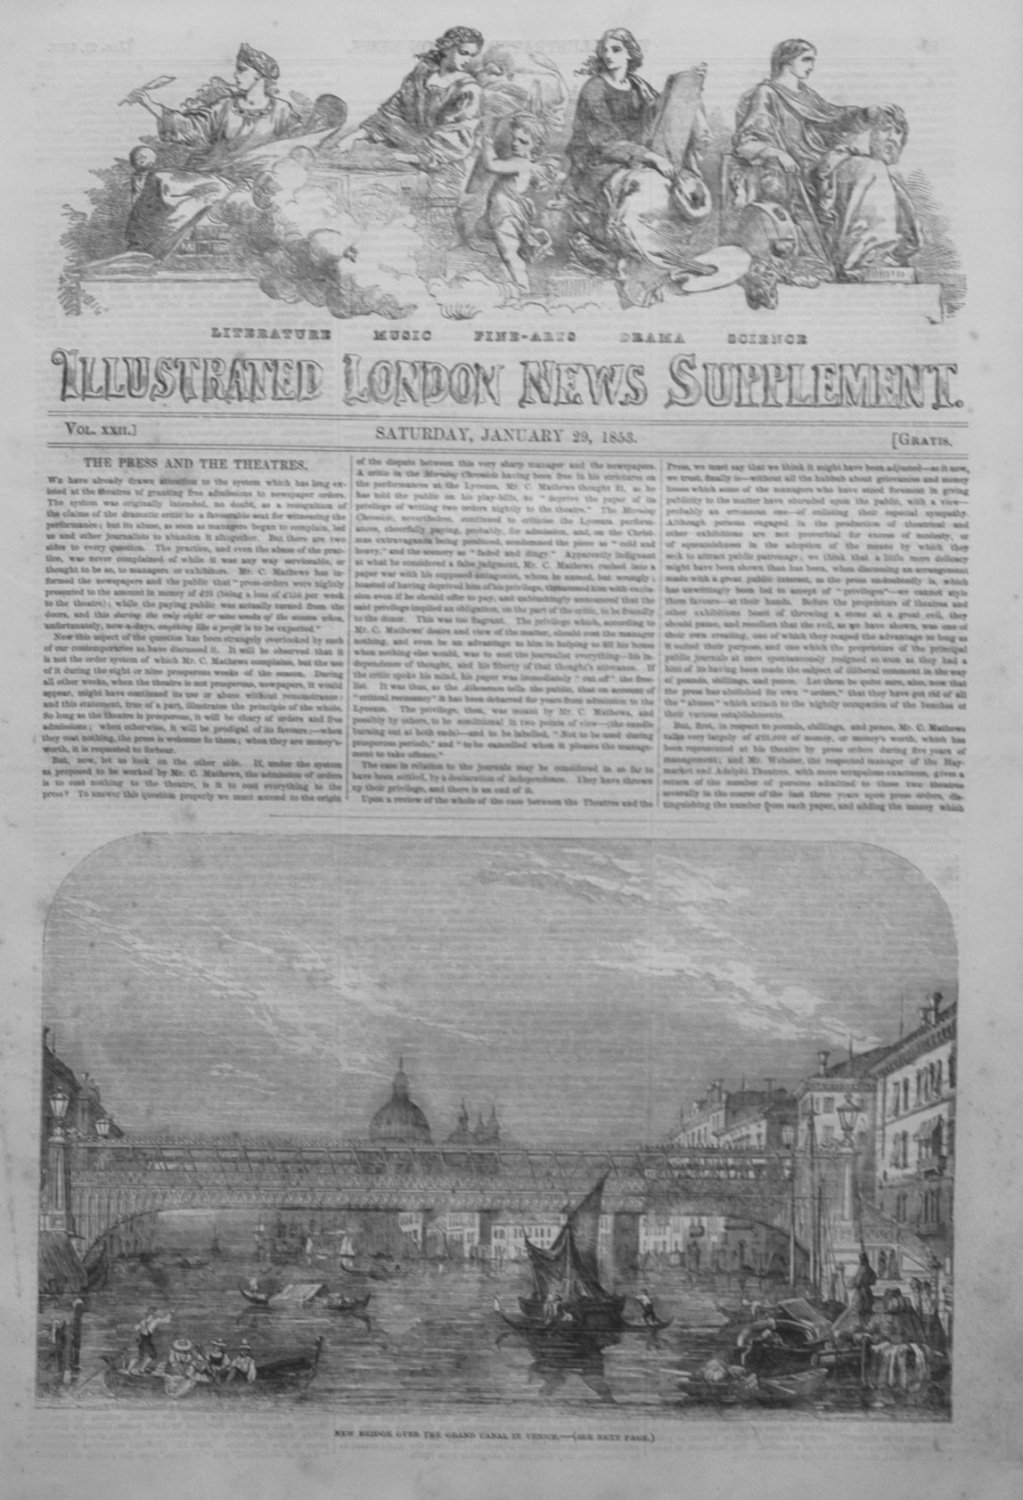 Illustrated London News (Supplement) For January 29th, 1853.